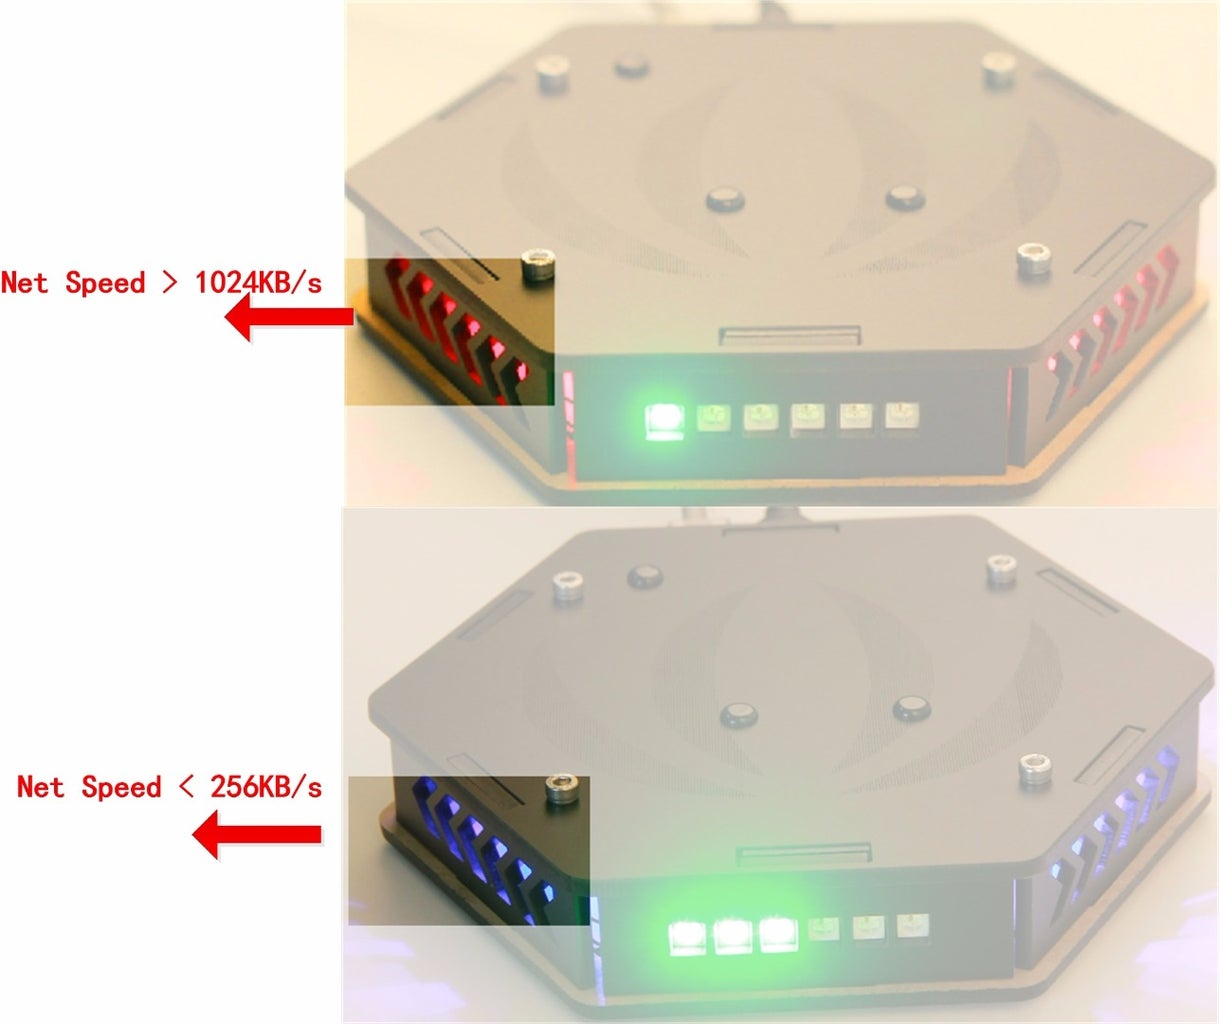 Smart Router With WiFi Connection Visualization